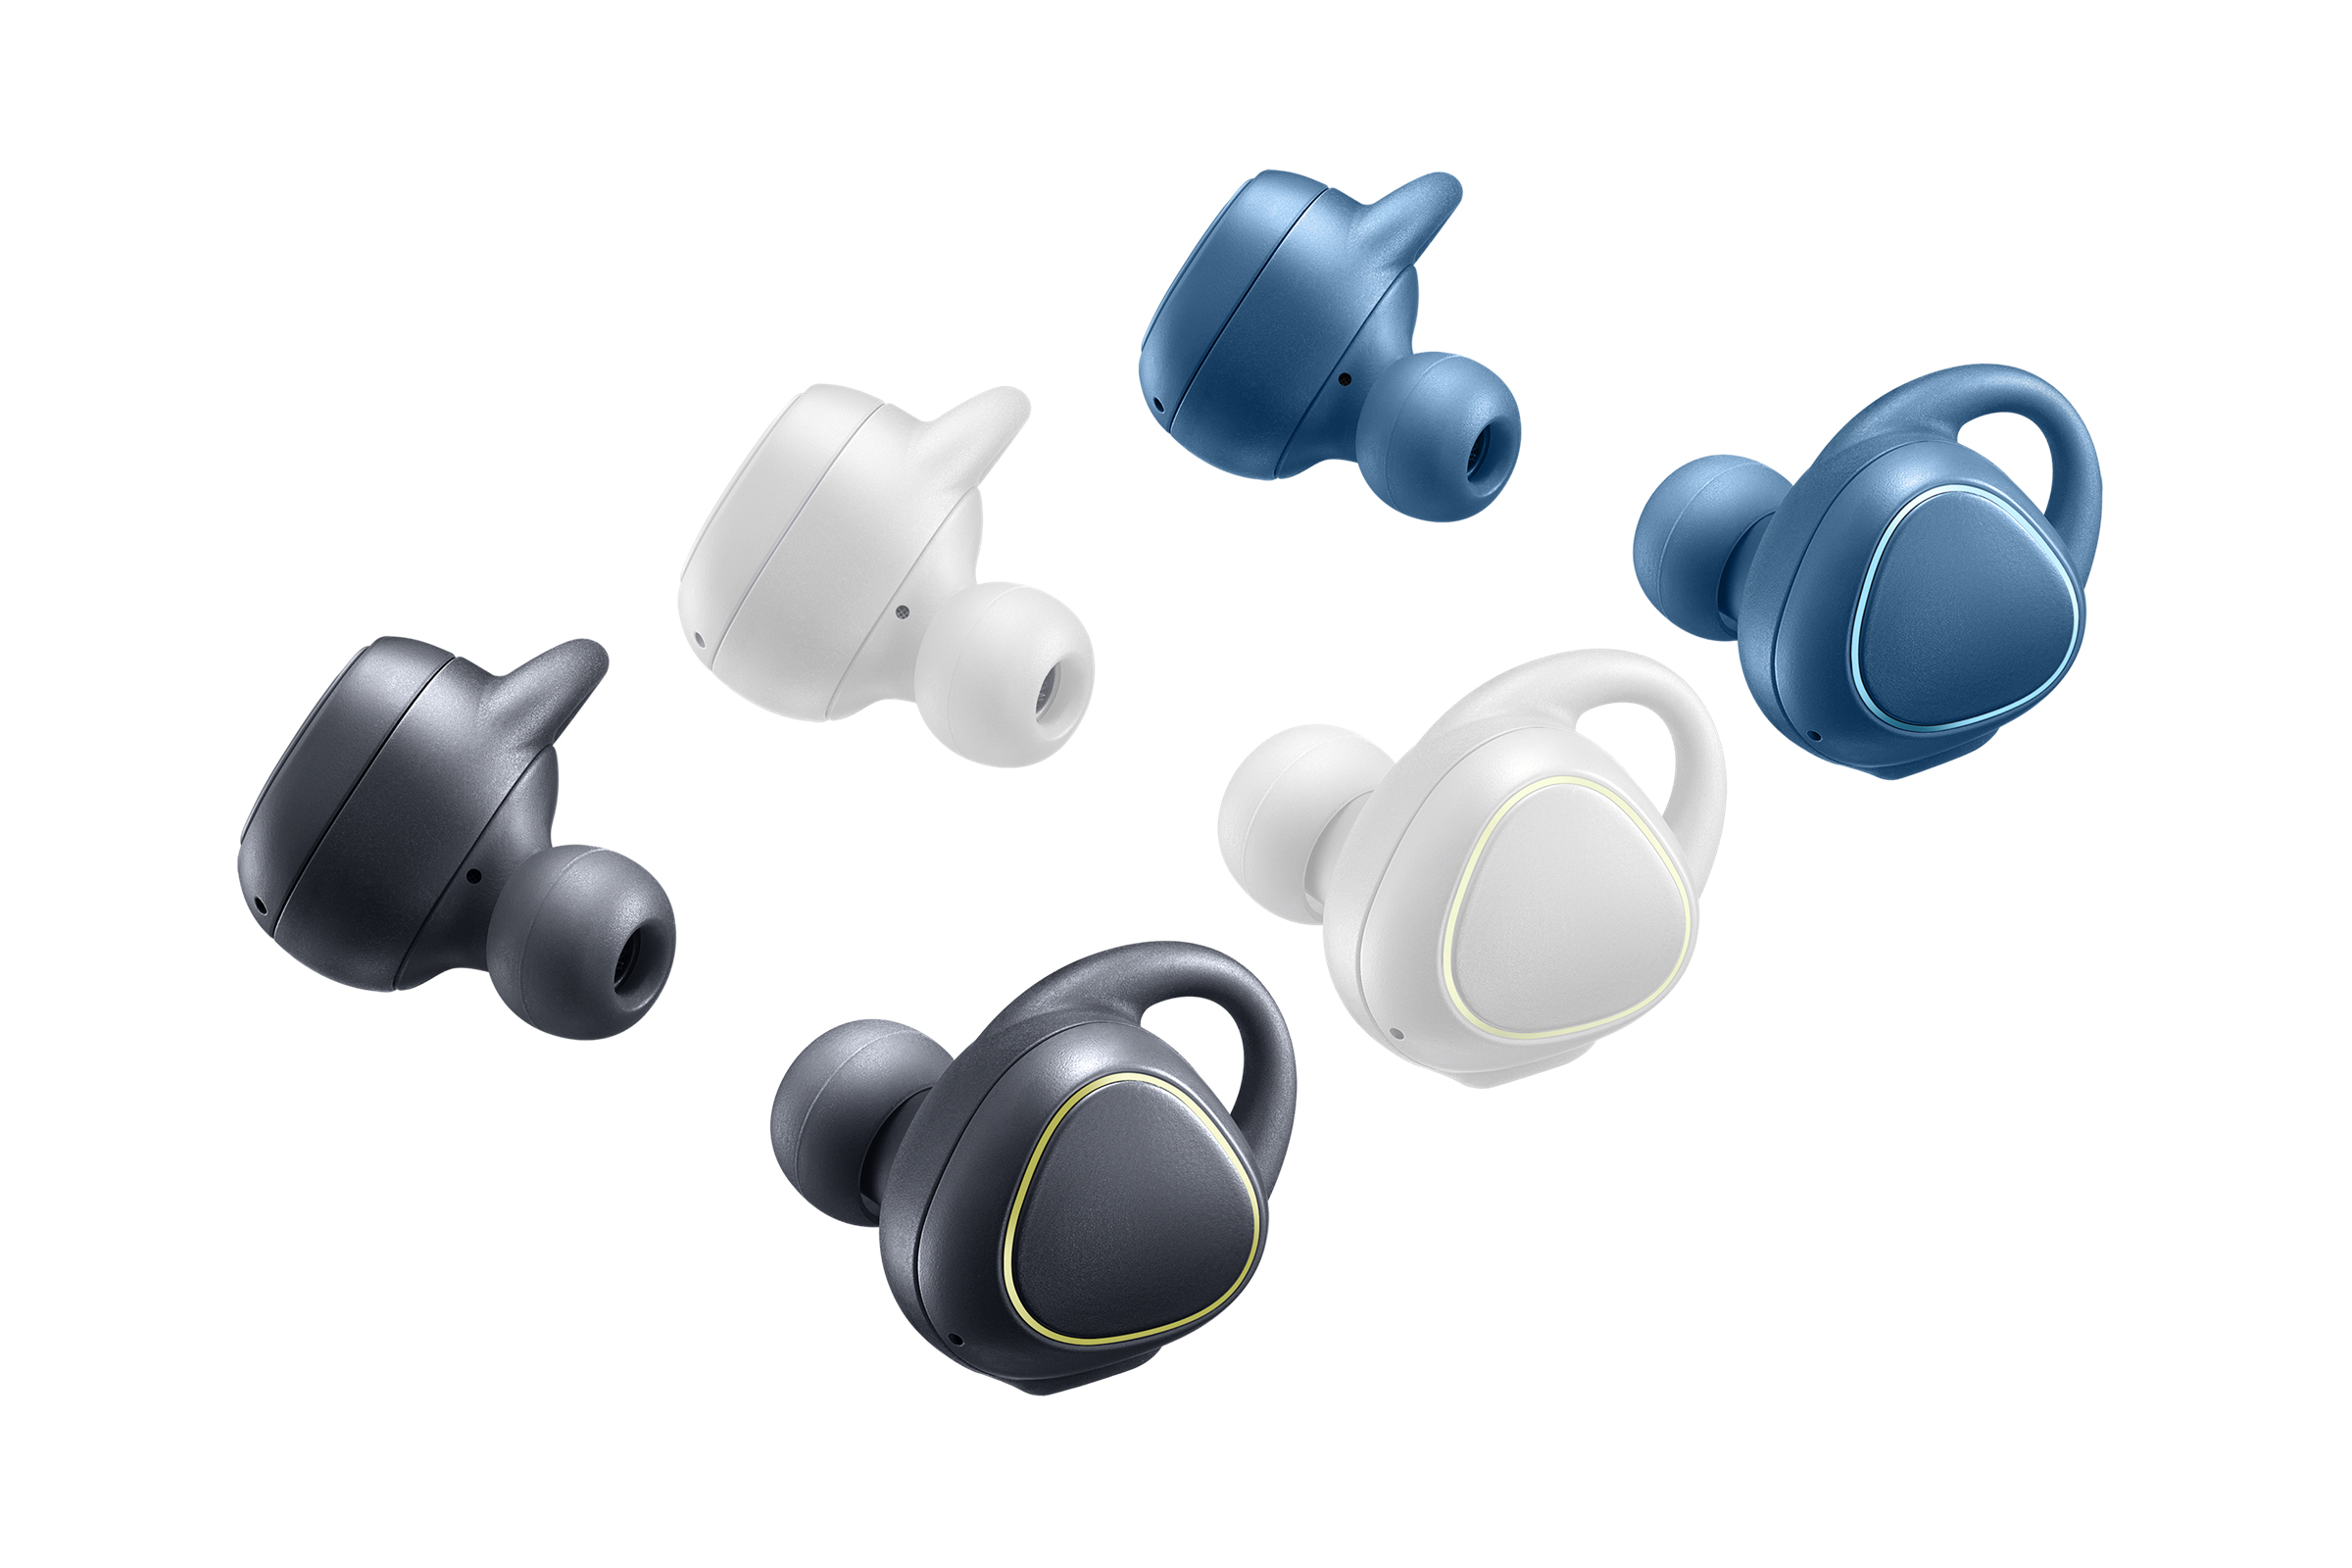 Samsung Gear IconX Product